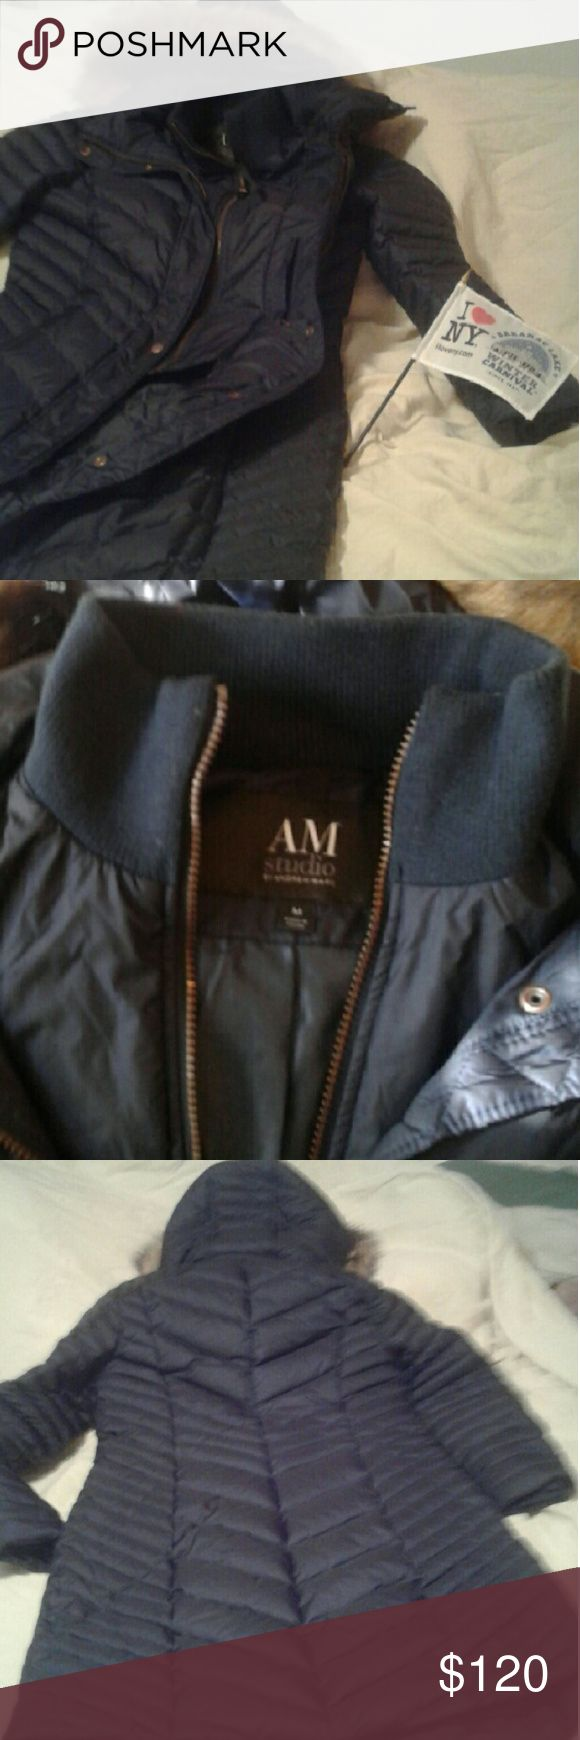 Dark Blue - Long Down Jacket by Andrew Marc Beautiful Brand new Size Medium but arms were small for me. Andrew Marc Jackets & Coats Puffers